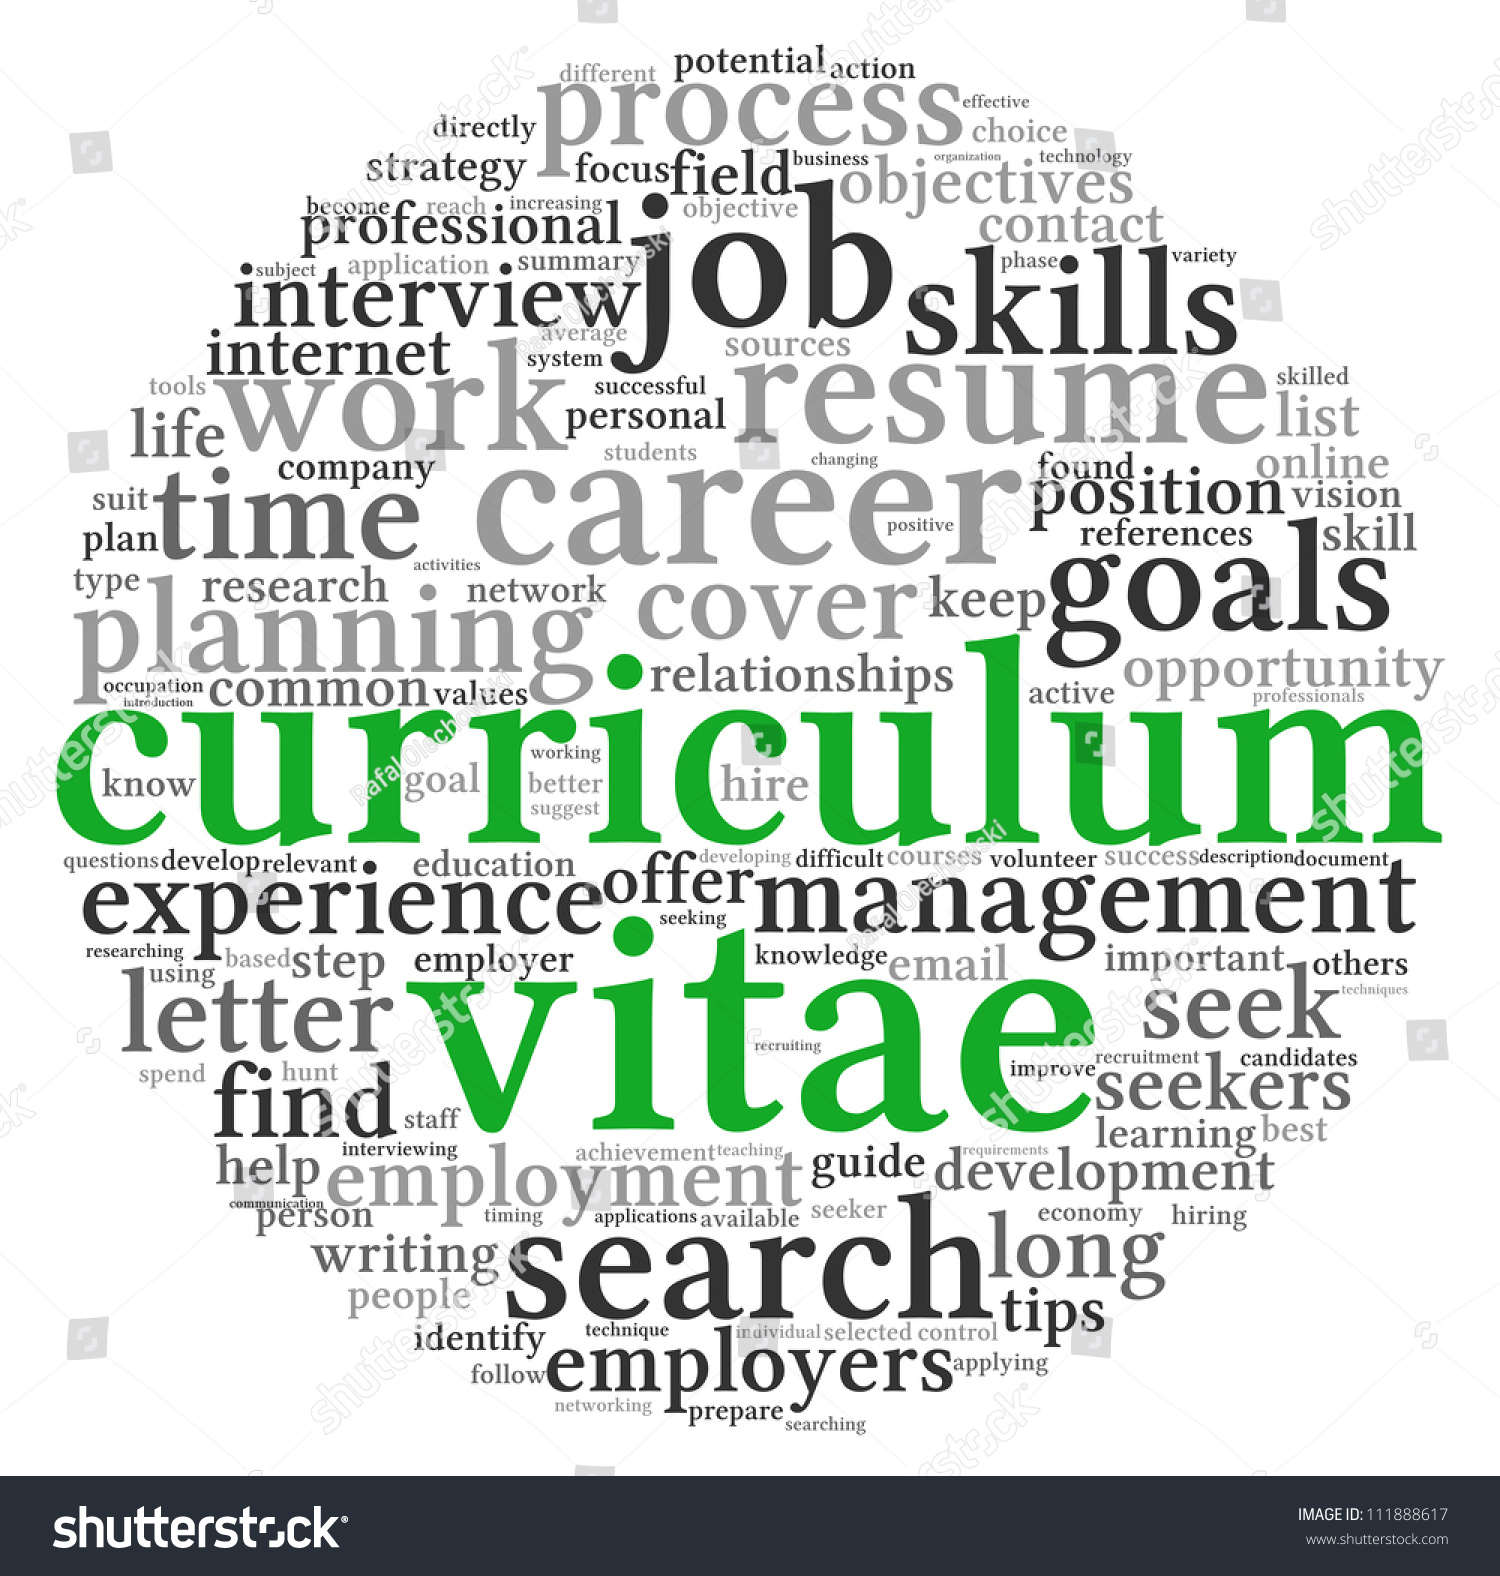 curriculum vitae cv concept word tag stock illustration 111888617 curriculum vitae cv concept in word tag cloud on white background